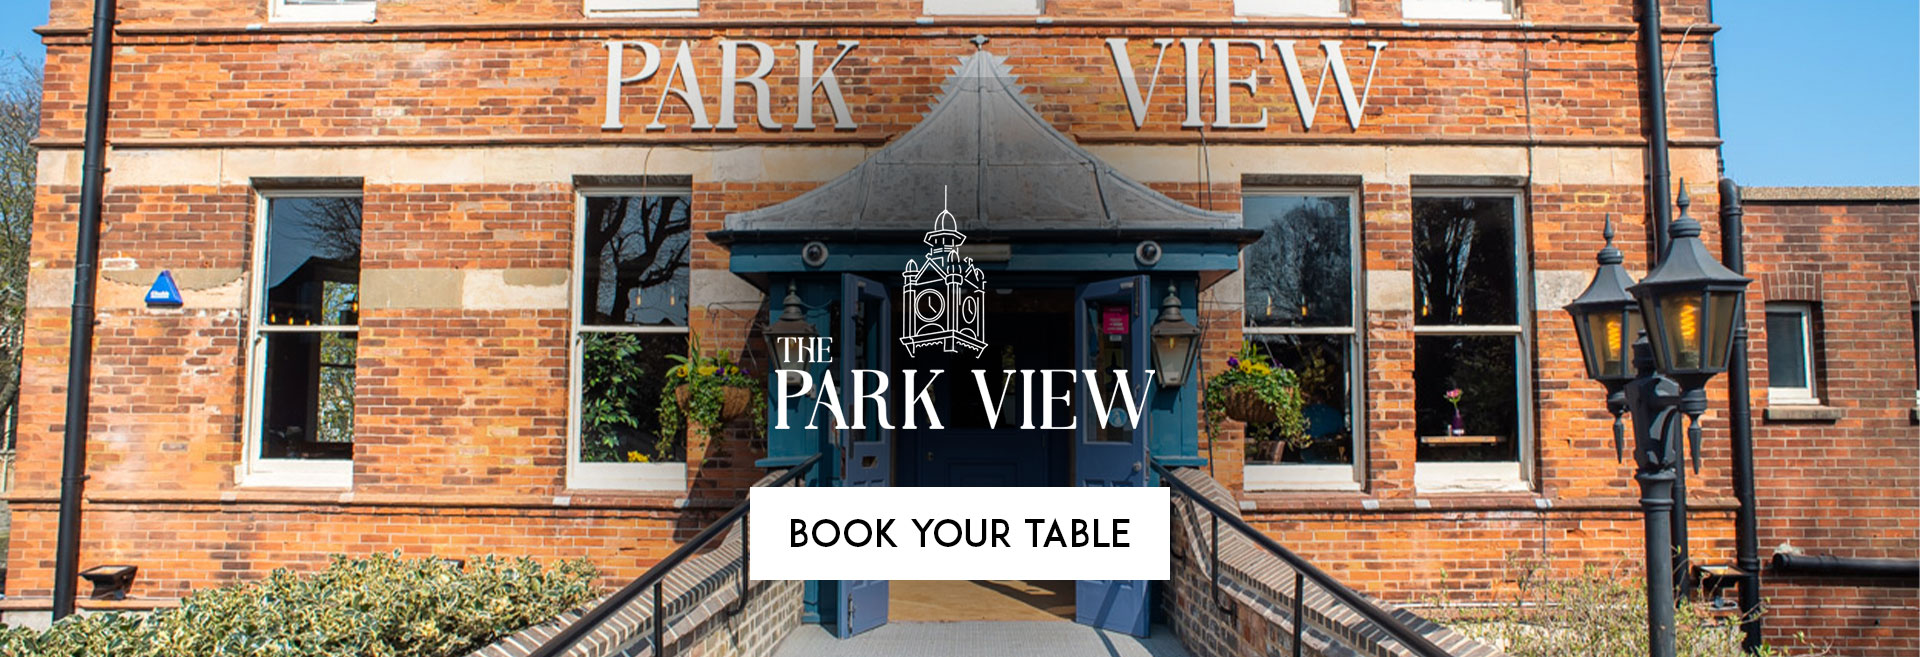 Book Your Table at The Park View